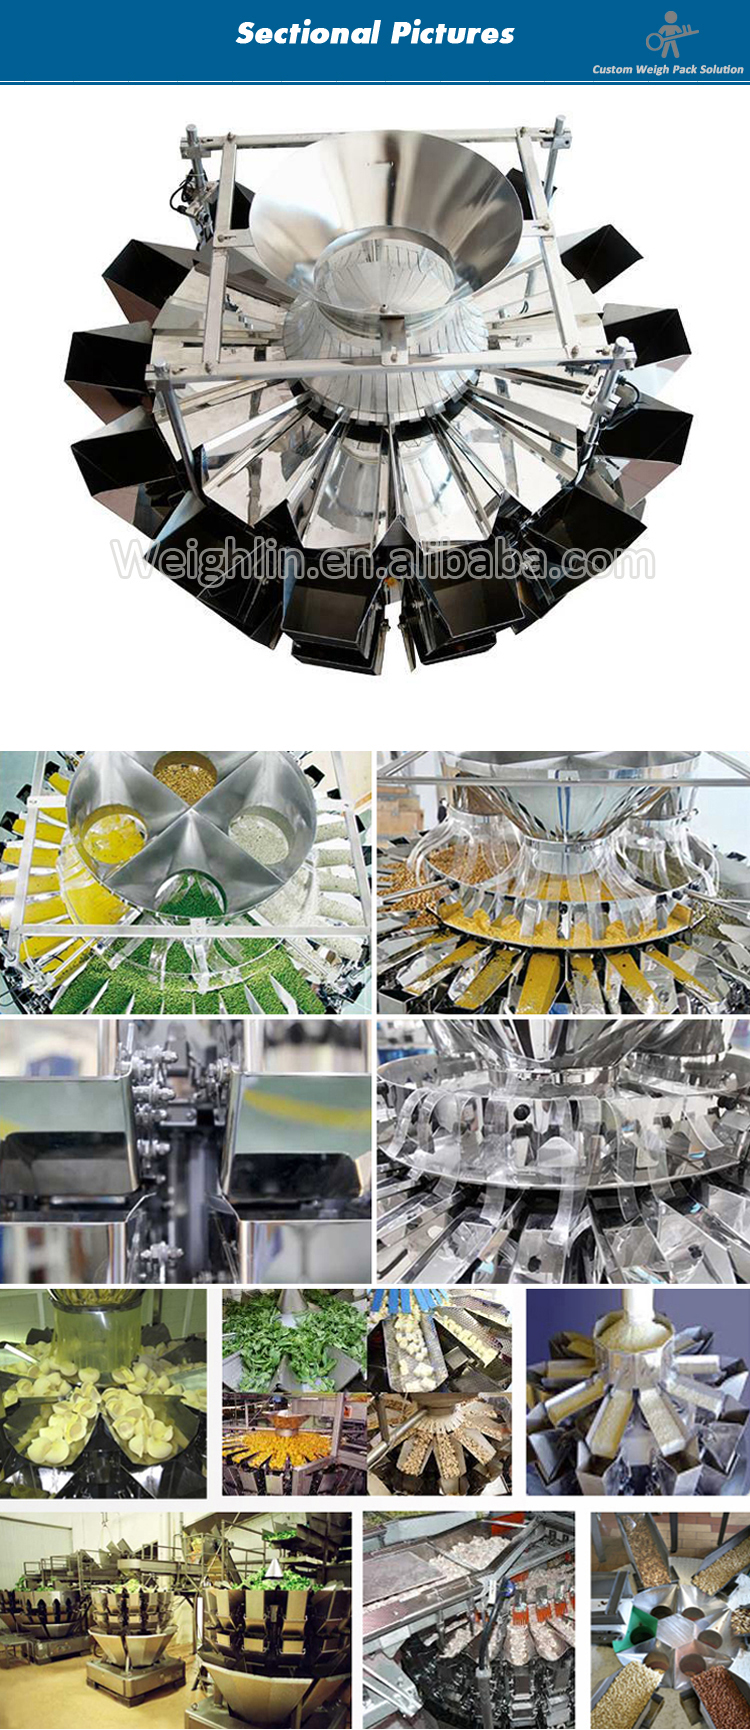 Automatic filling packaging machine with 14 heads multihead weigher for filling capsule tablet